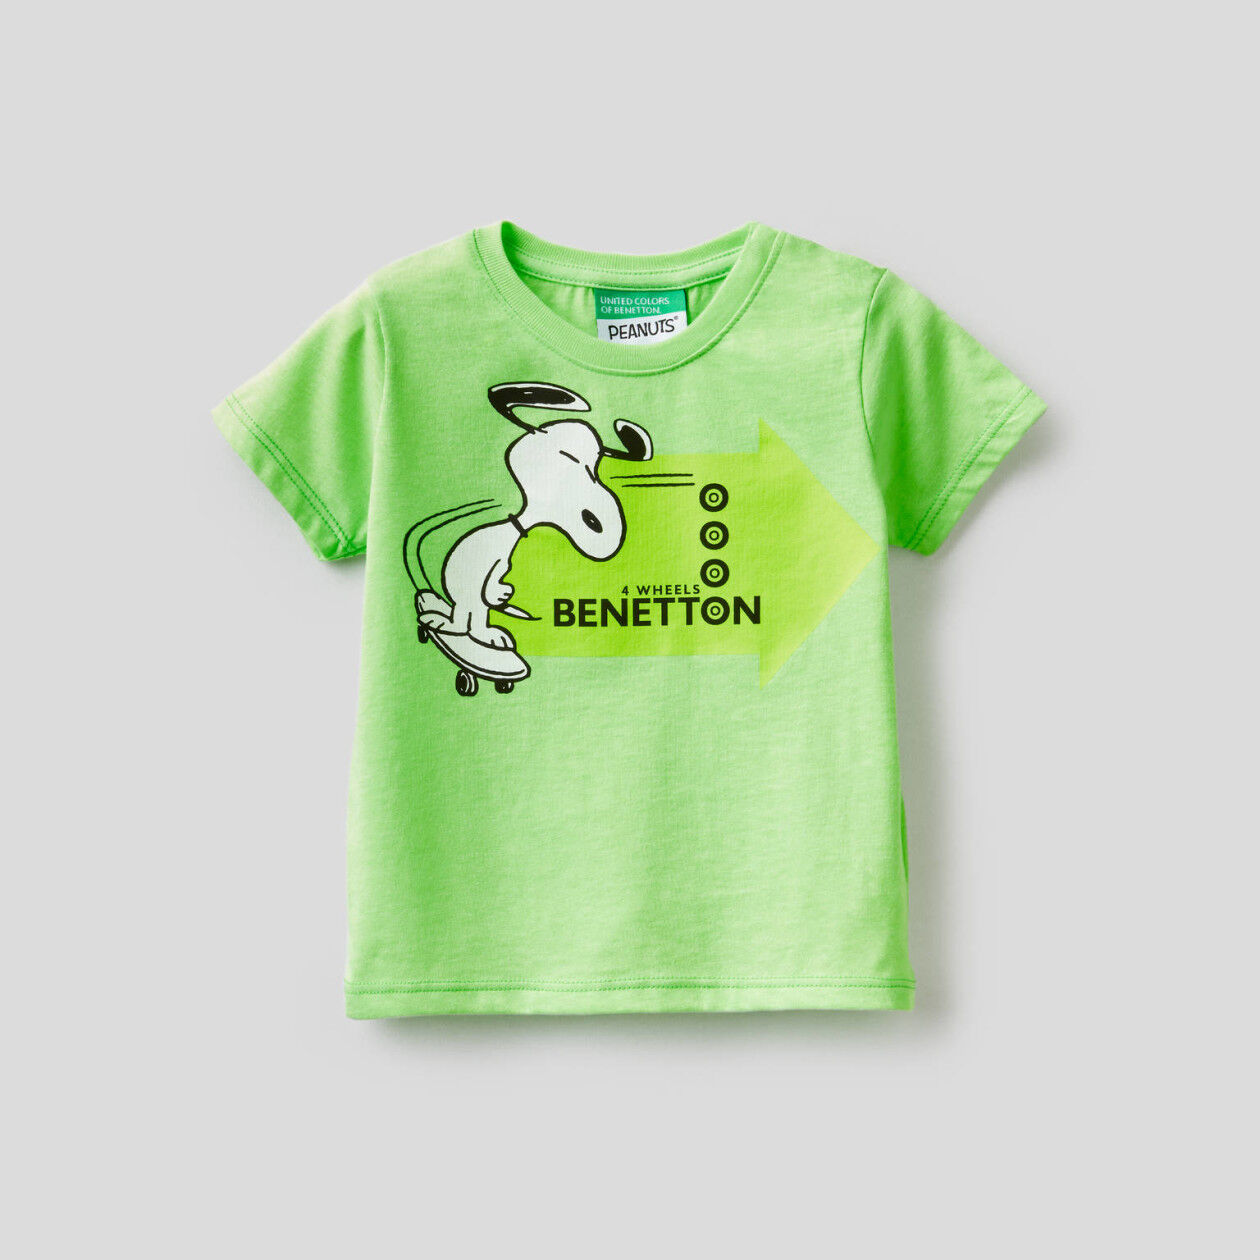 T-shirt with Peanuts print